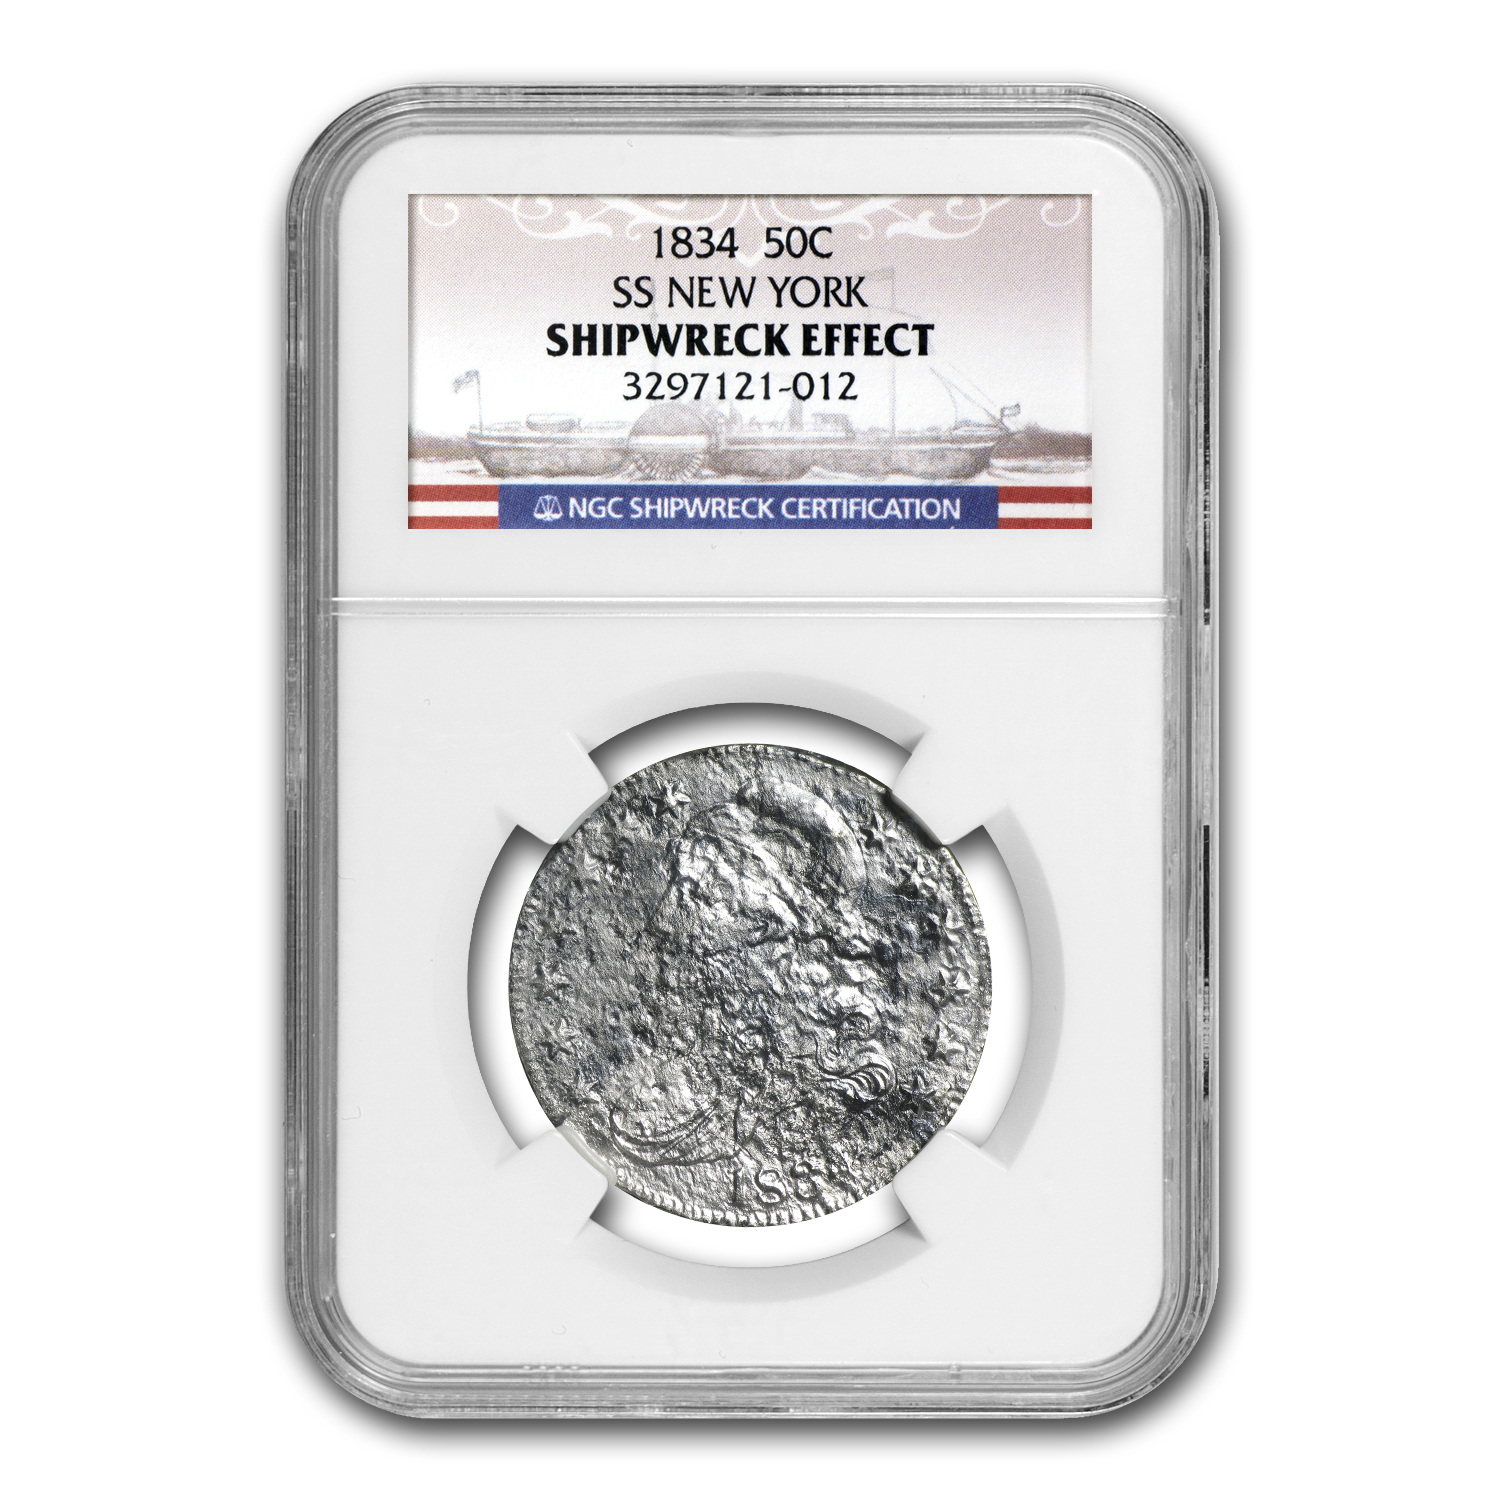 1834 Capped Bust Half Dollar SS New York NGC (Shipwreck Effect)